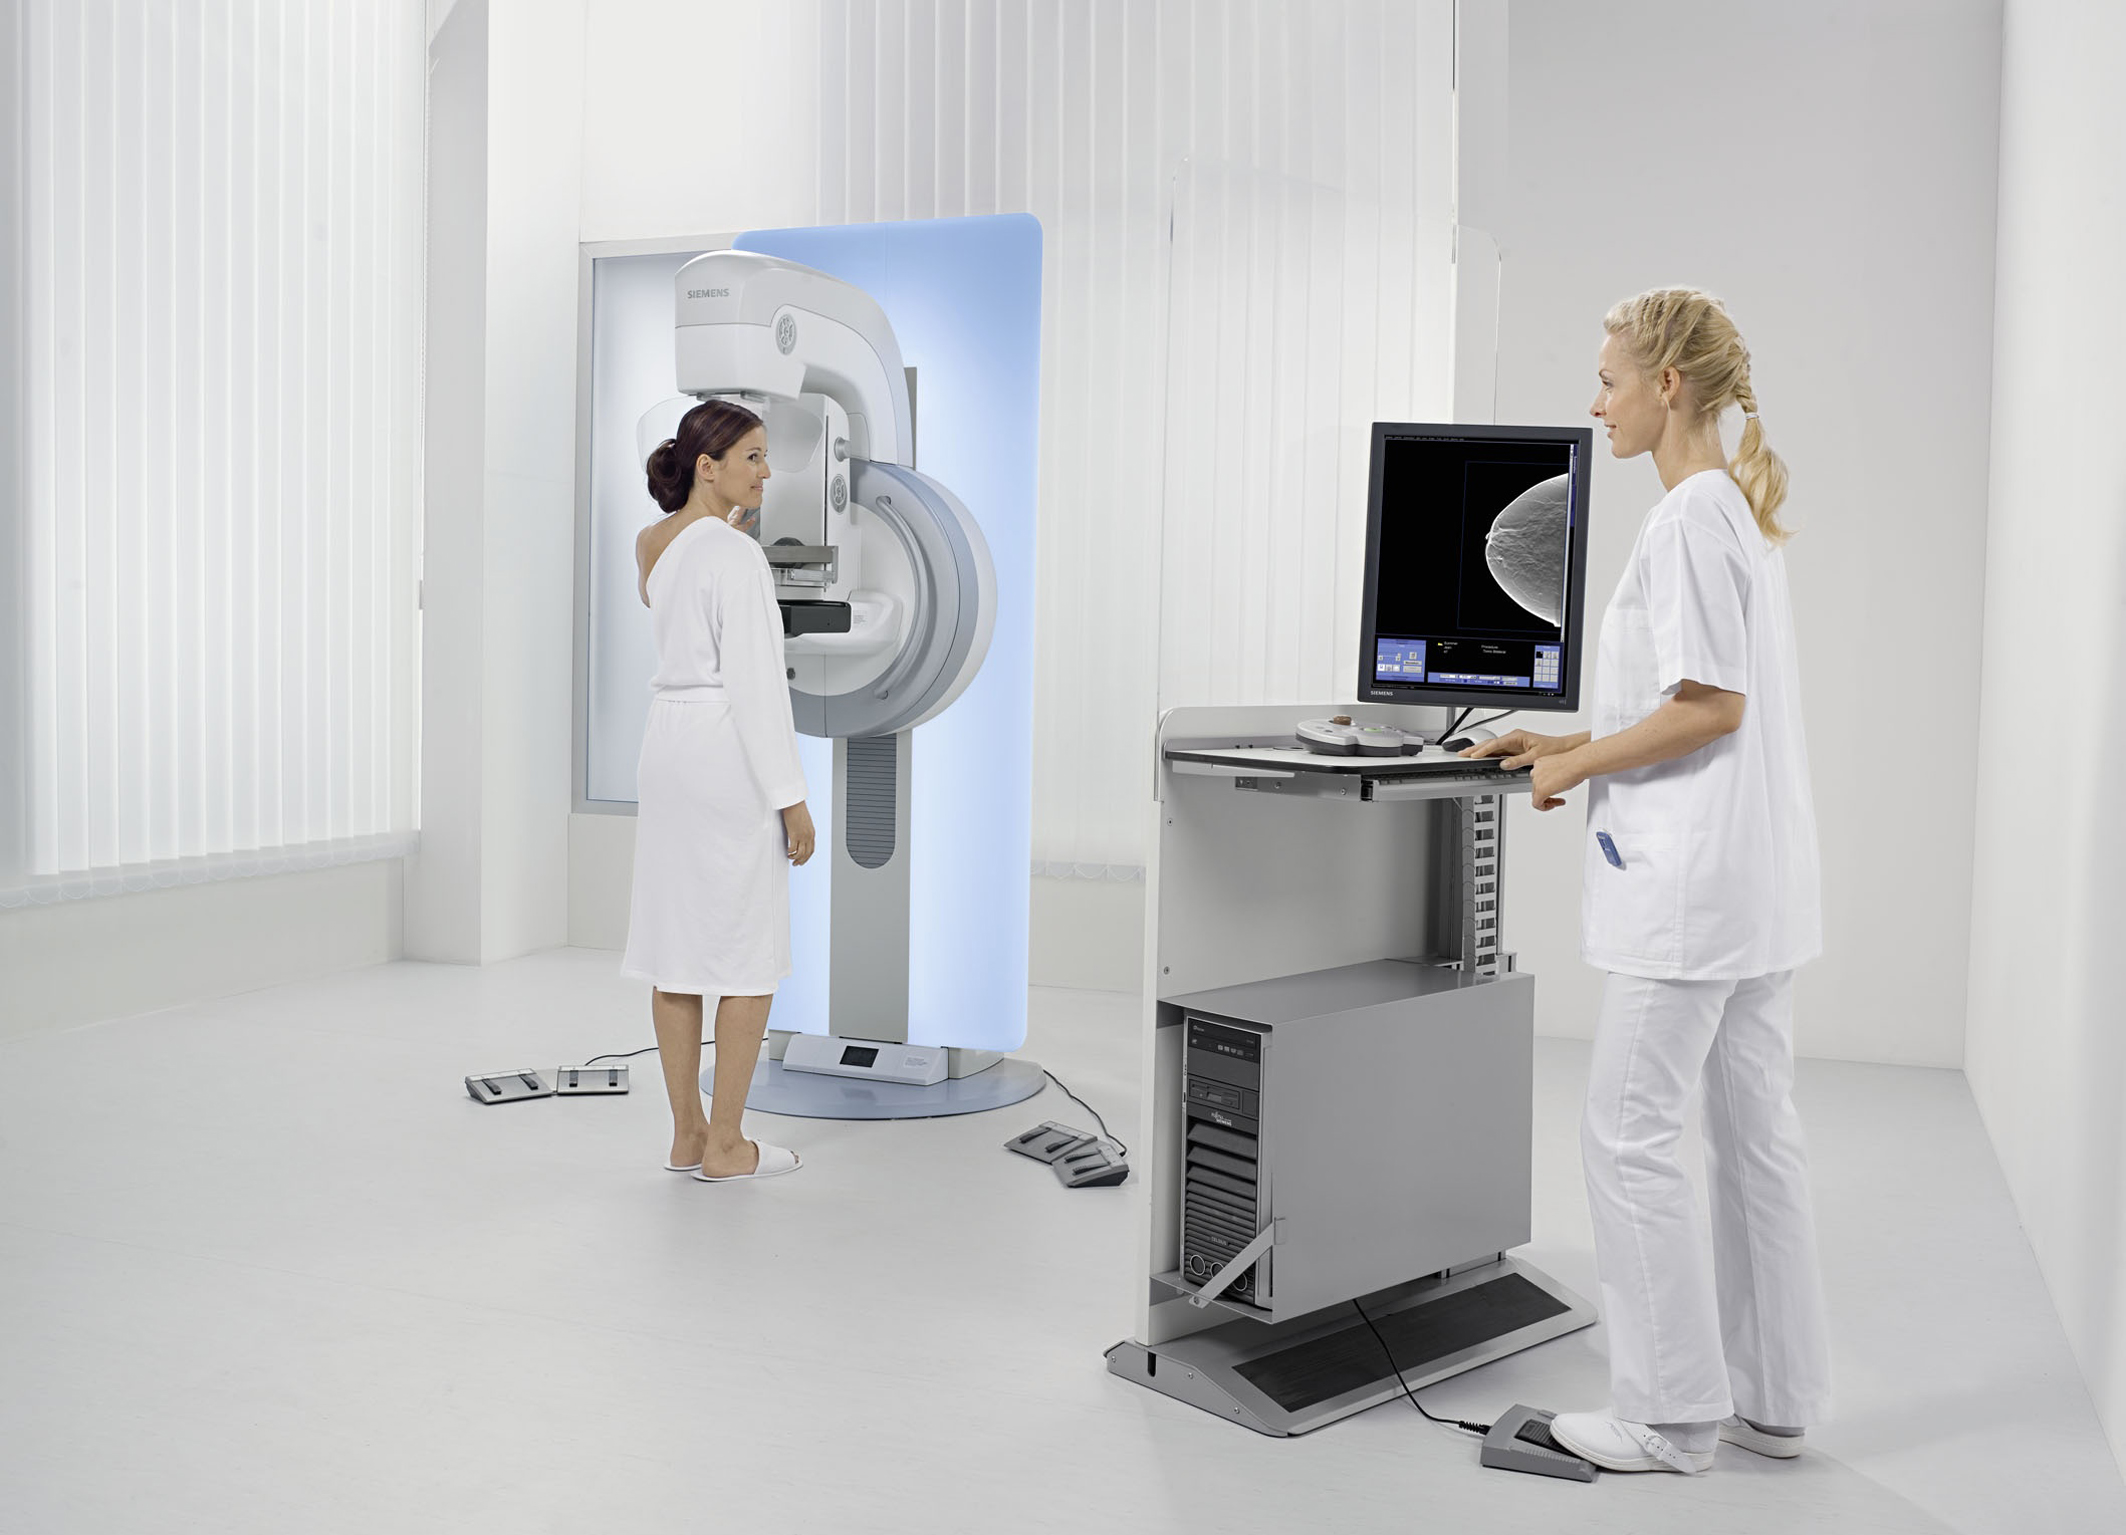 cancer 3D mammogram